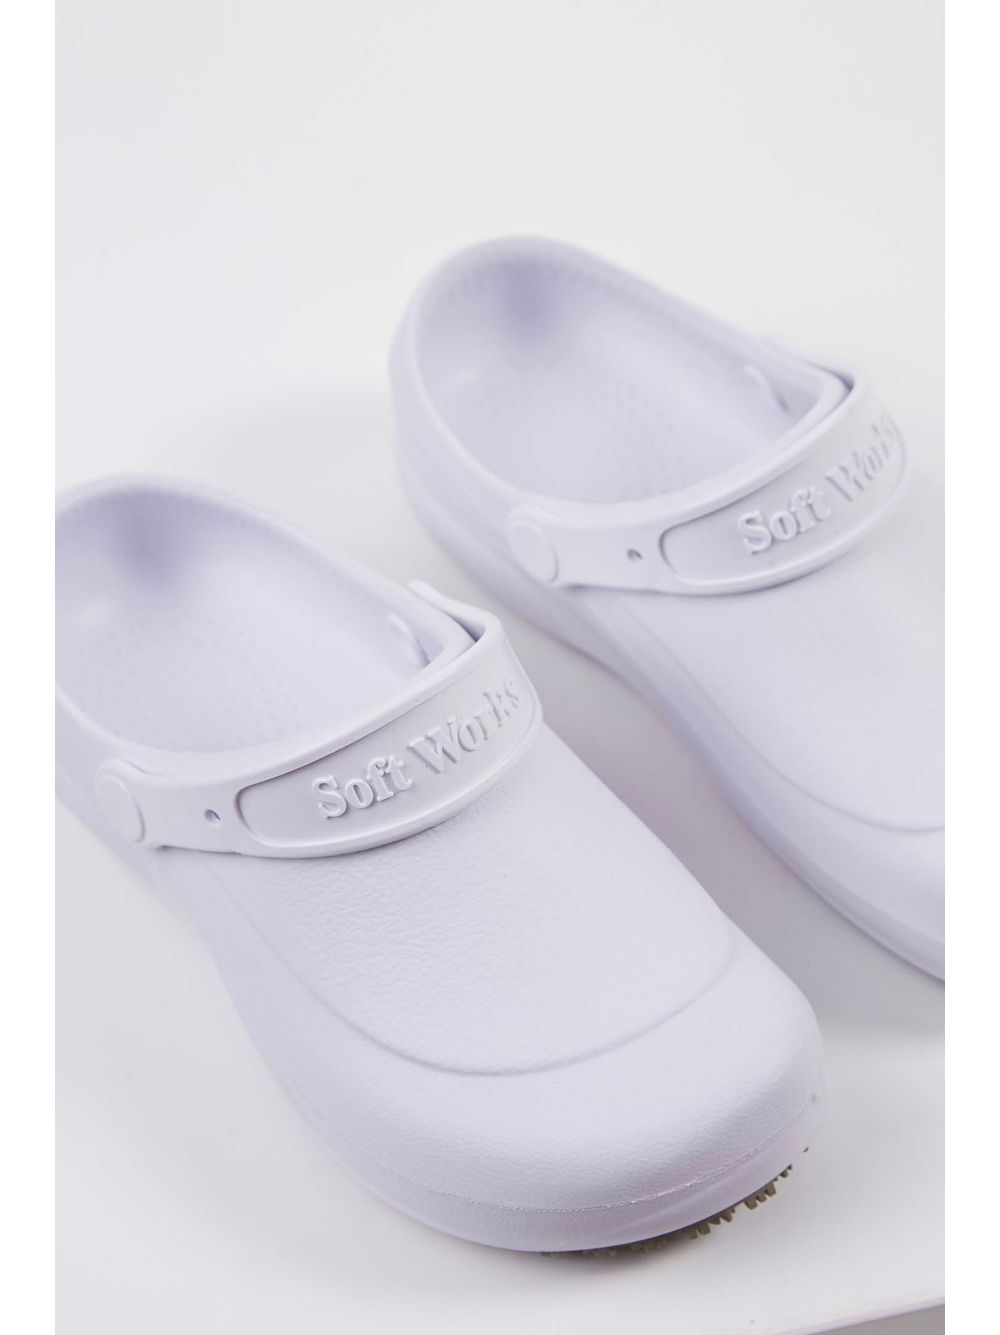 6ab1f729a Babuche Crocs Soft Walk Branco - pittol